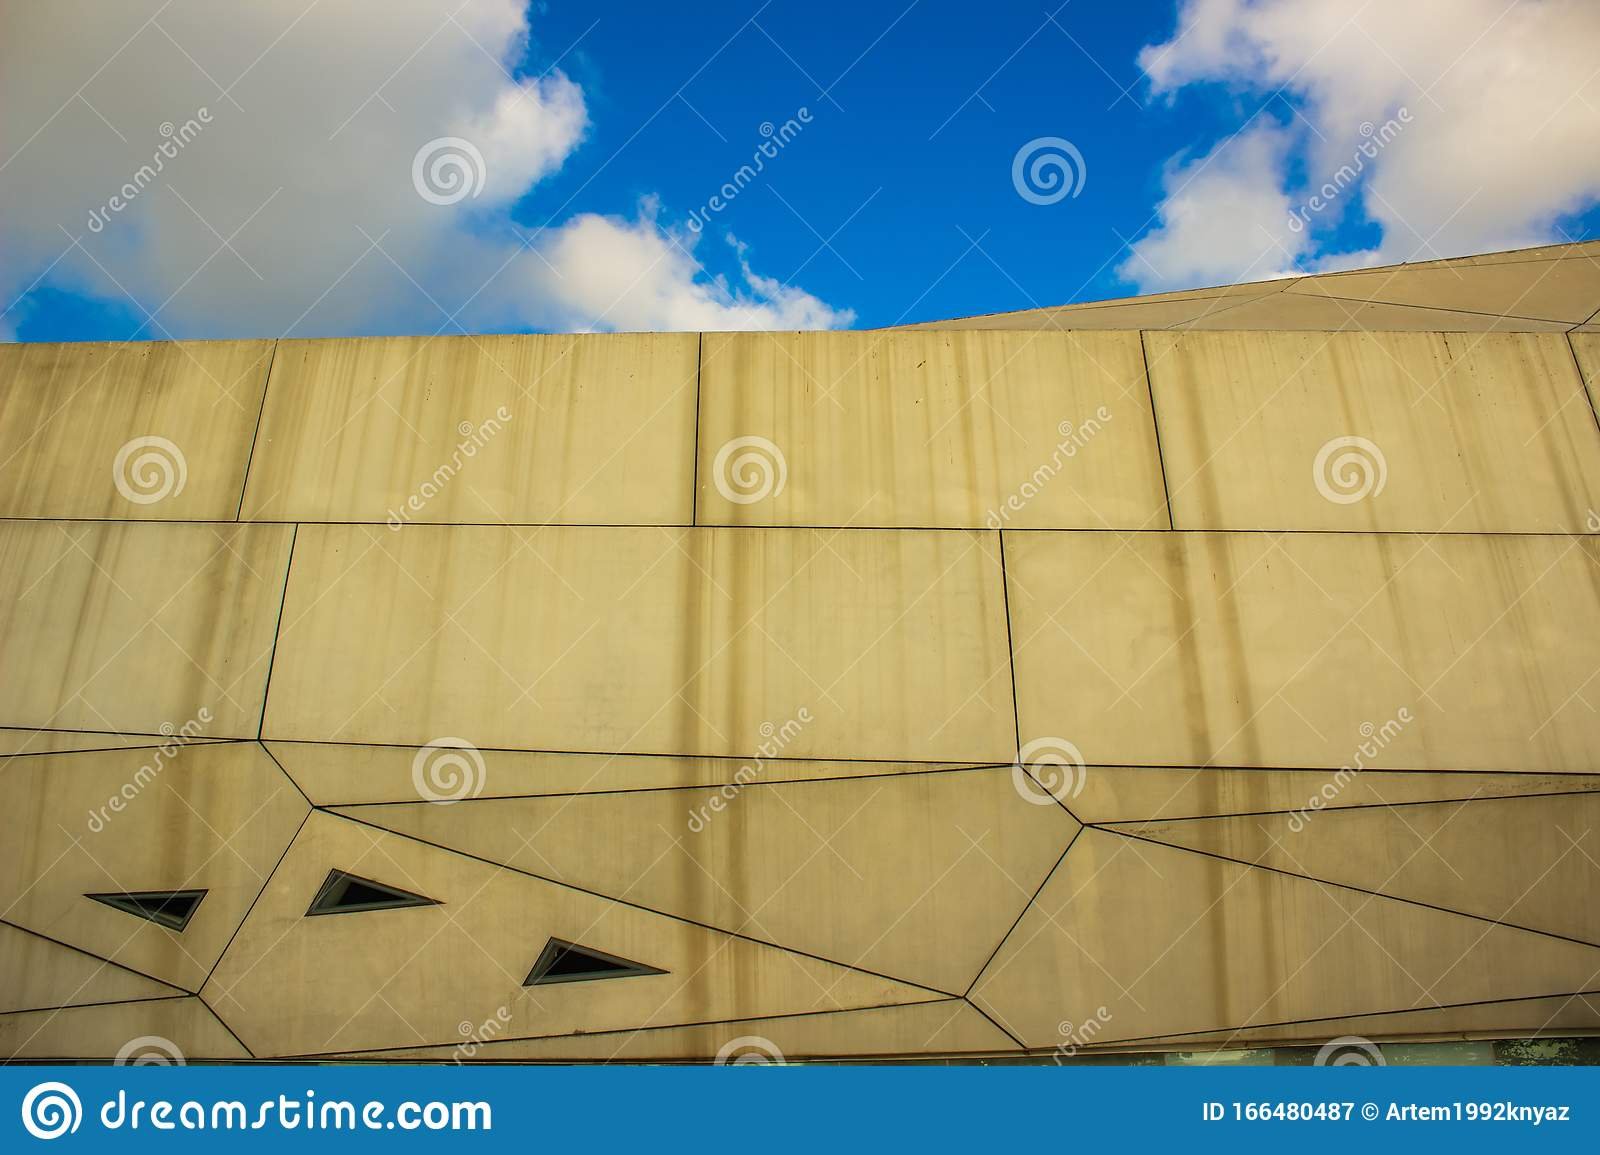 1 046 Ugly Wallpaper Photos Free Royalty Free Stock Photos From Dreamstime